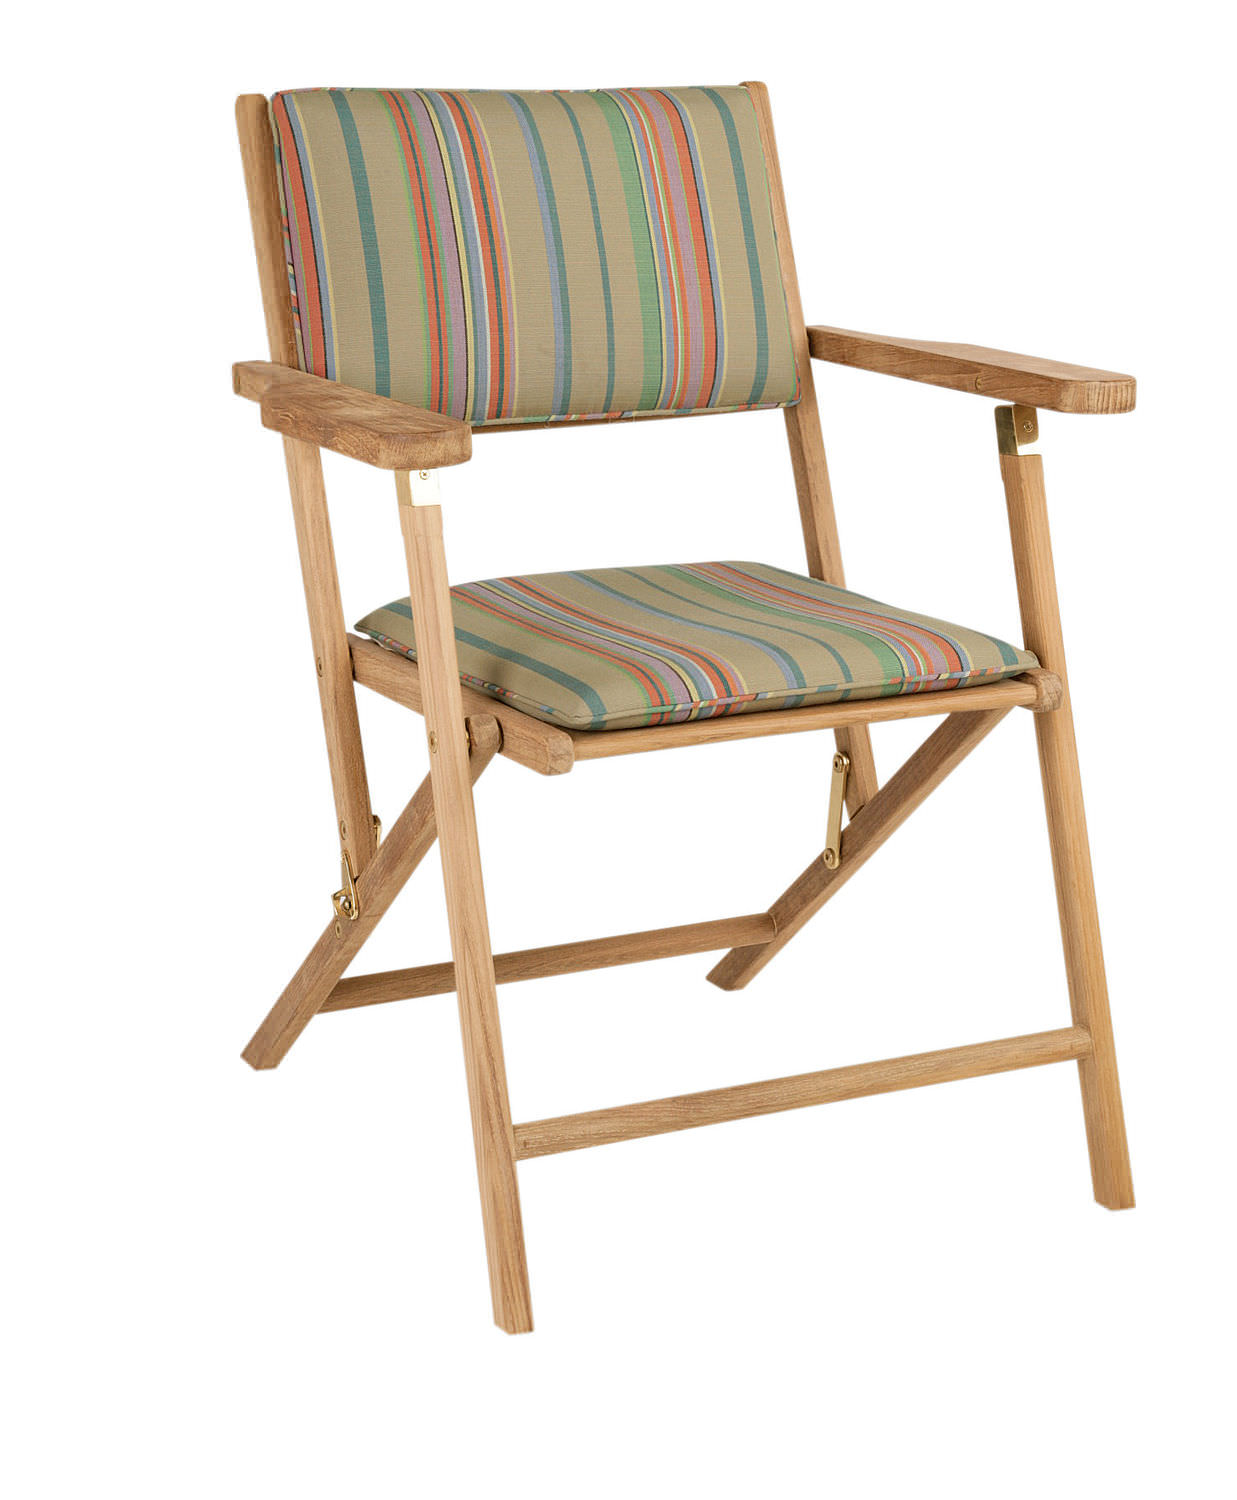 Wooden chairs with armrest -  Traditional Chair Wooden Folding With Armrests Ship To Shore By John Hutton Sutherland